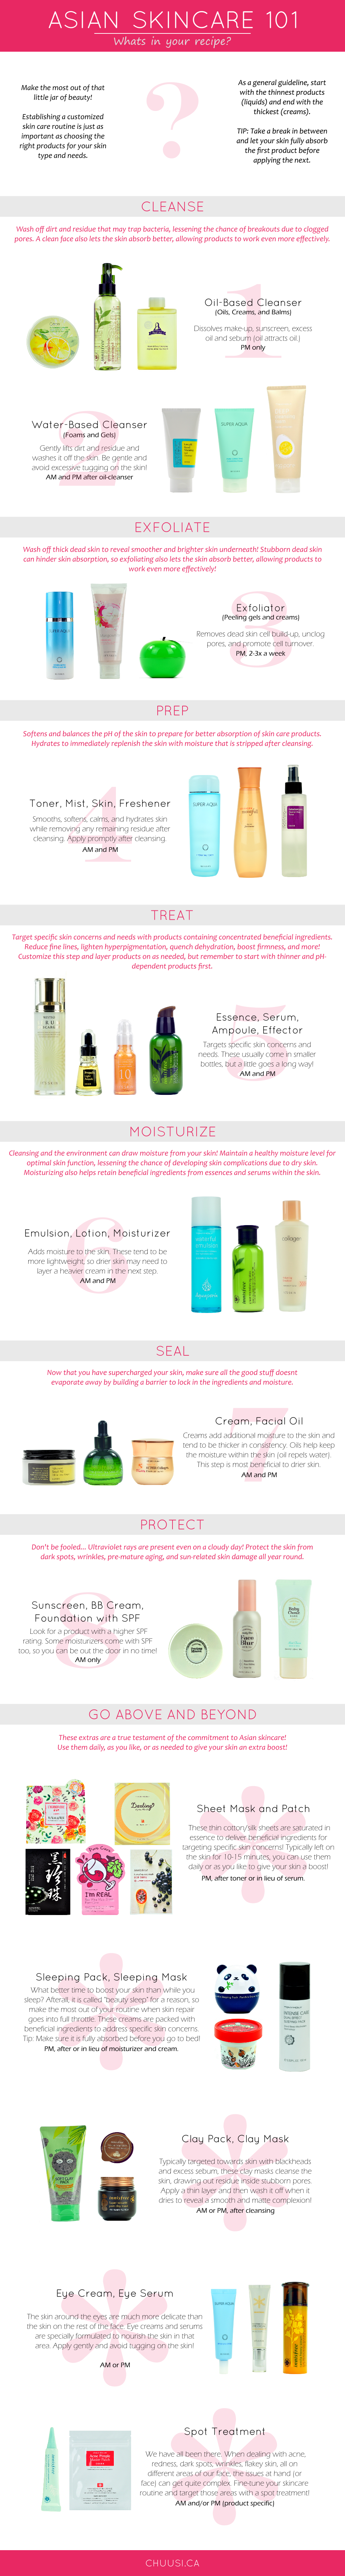 How To Select The Best Skin Care Products For Your Routine Asiatische Hautpflege Hautpflege Pickel